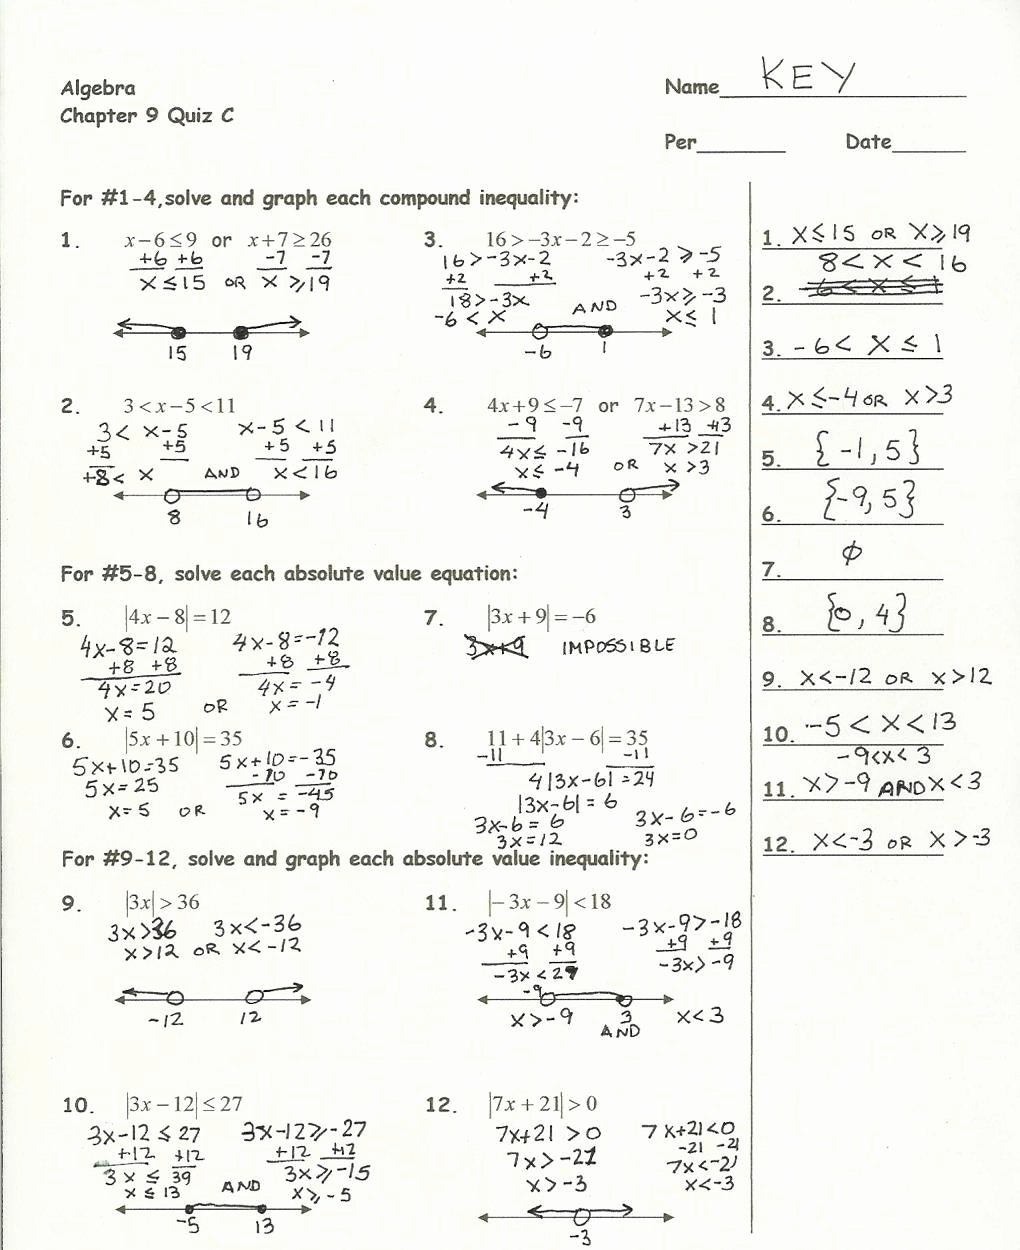 Quadratic Equation Worksheet with Answers Beautiful solving Quadratic Equations by Factoring Worksheet Answers